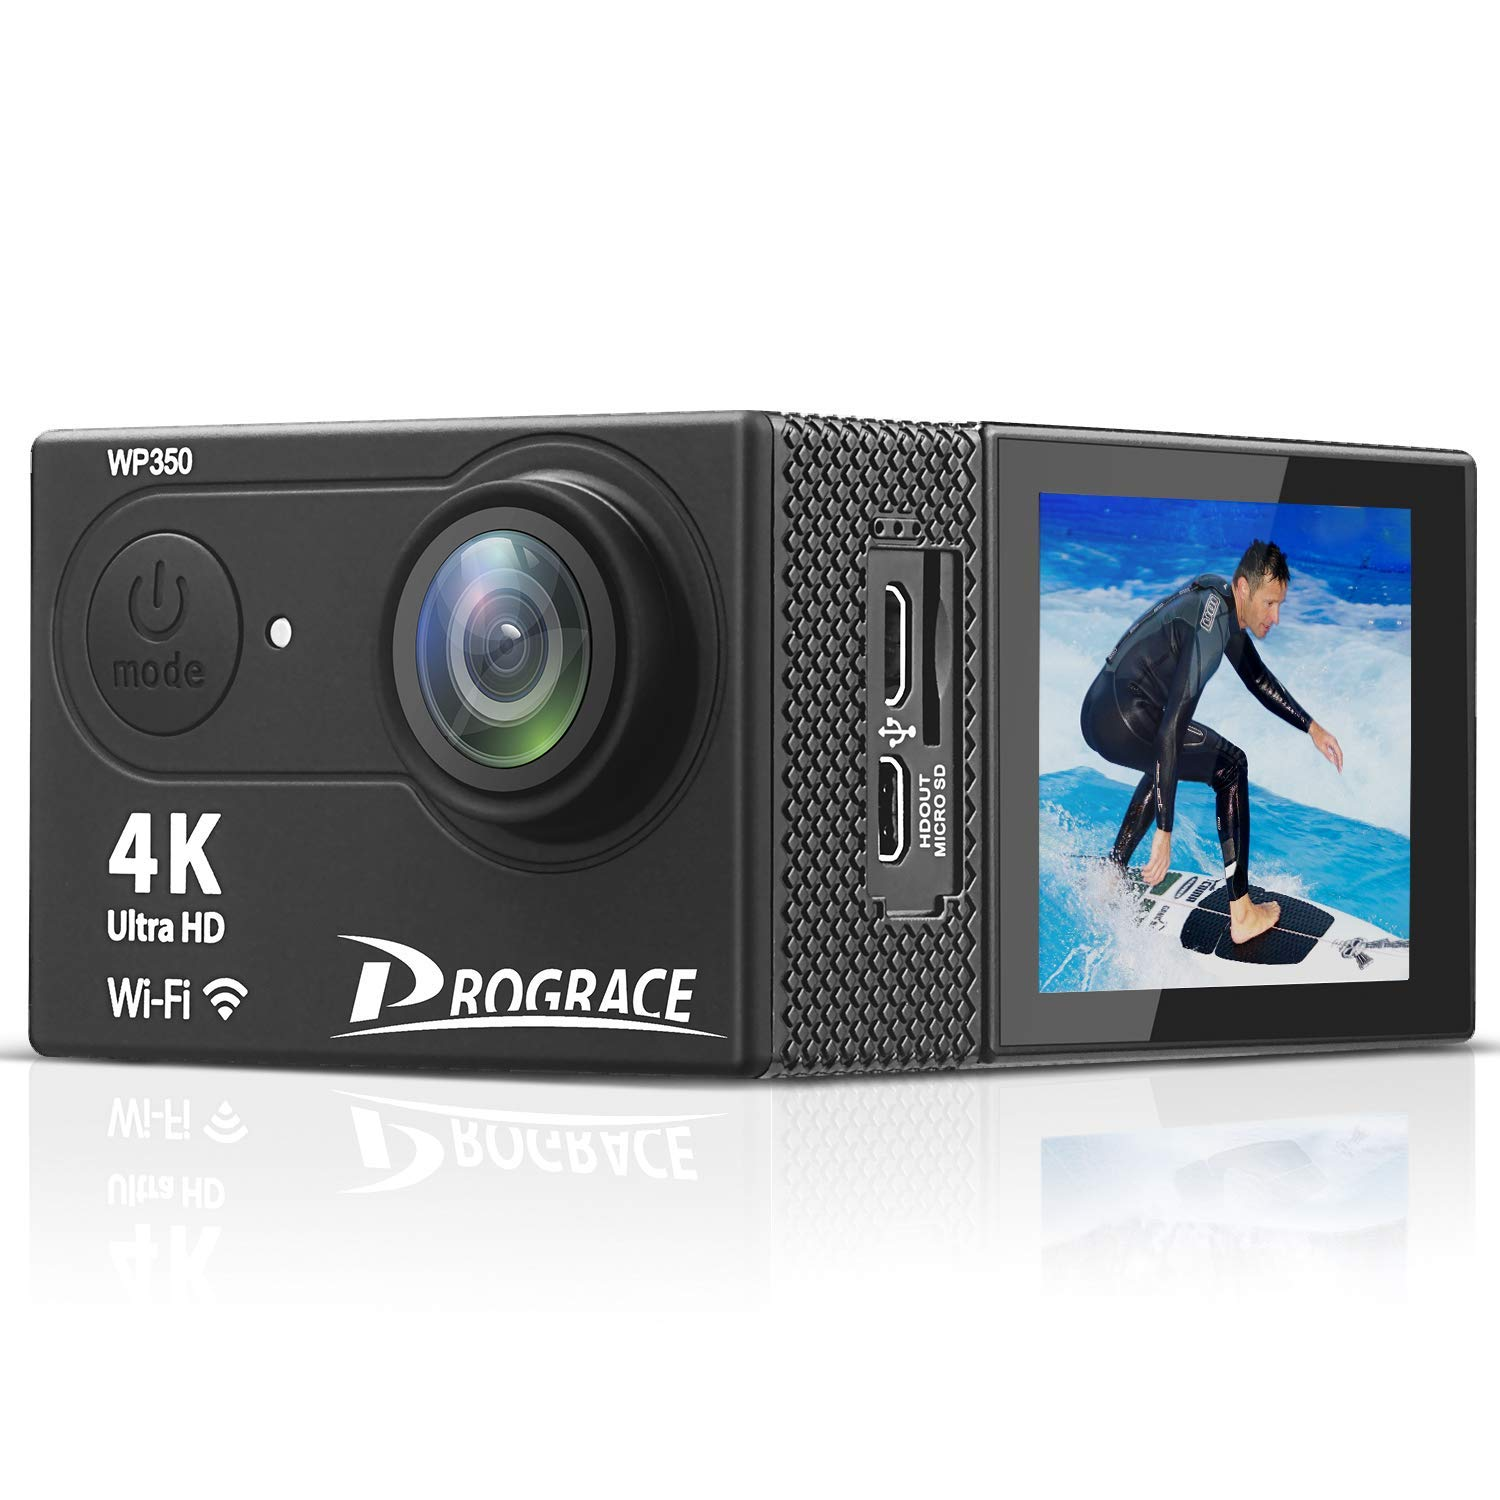 Cheap Youtube Best Camera, find Youtube Best Camera deals on